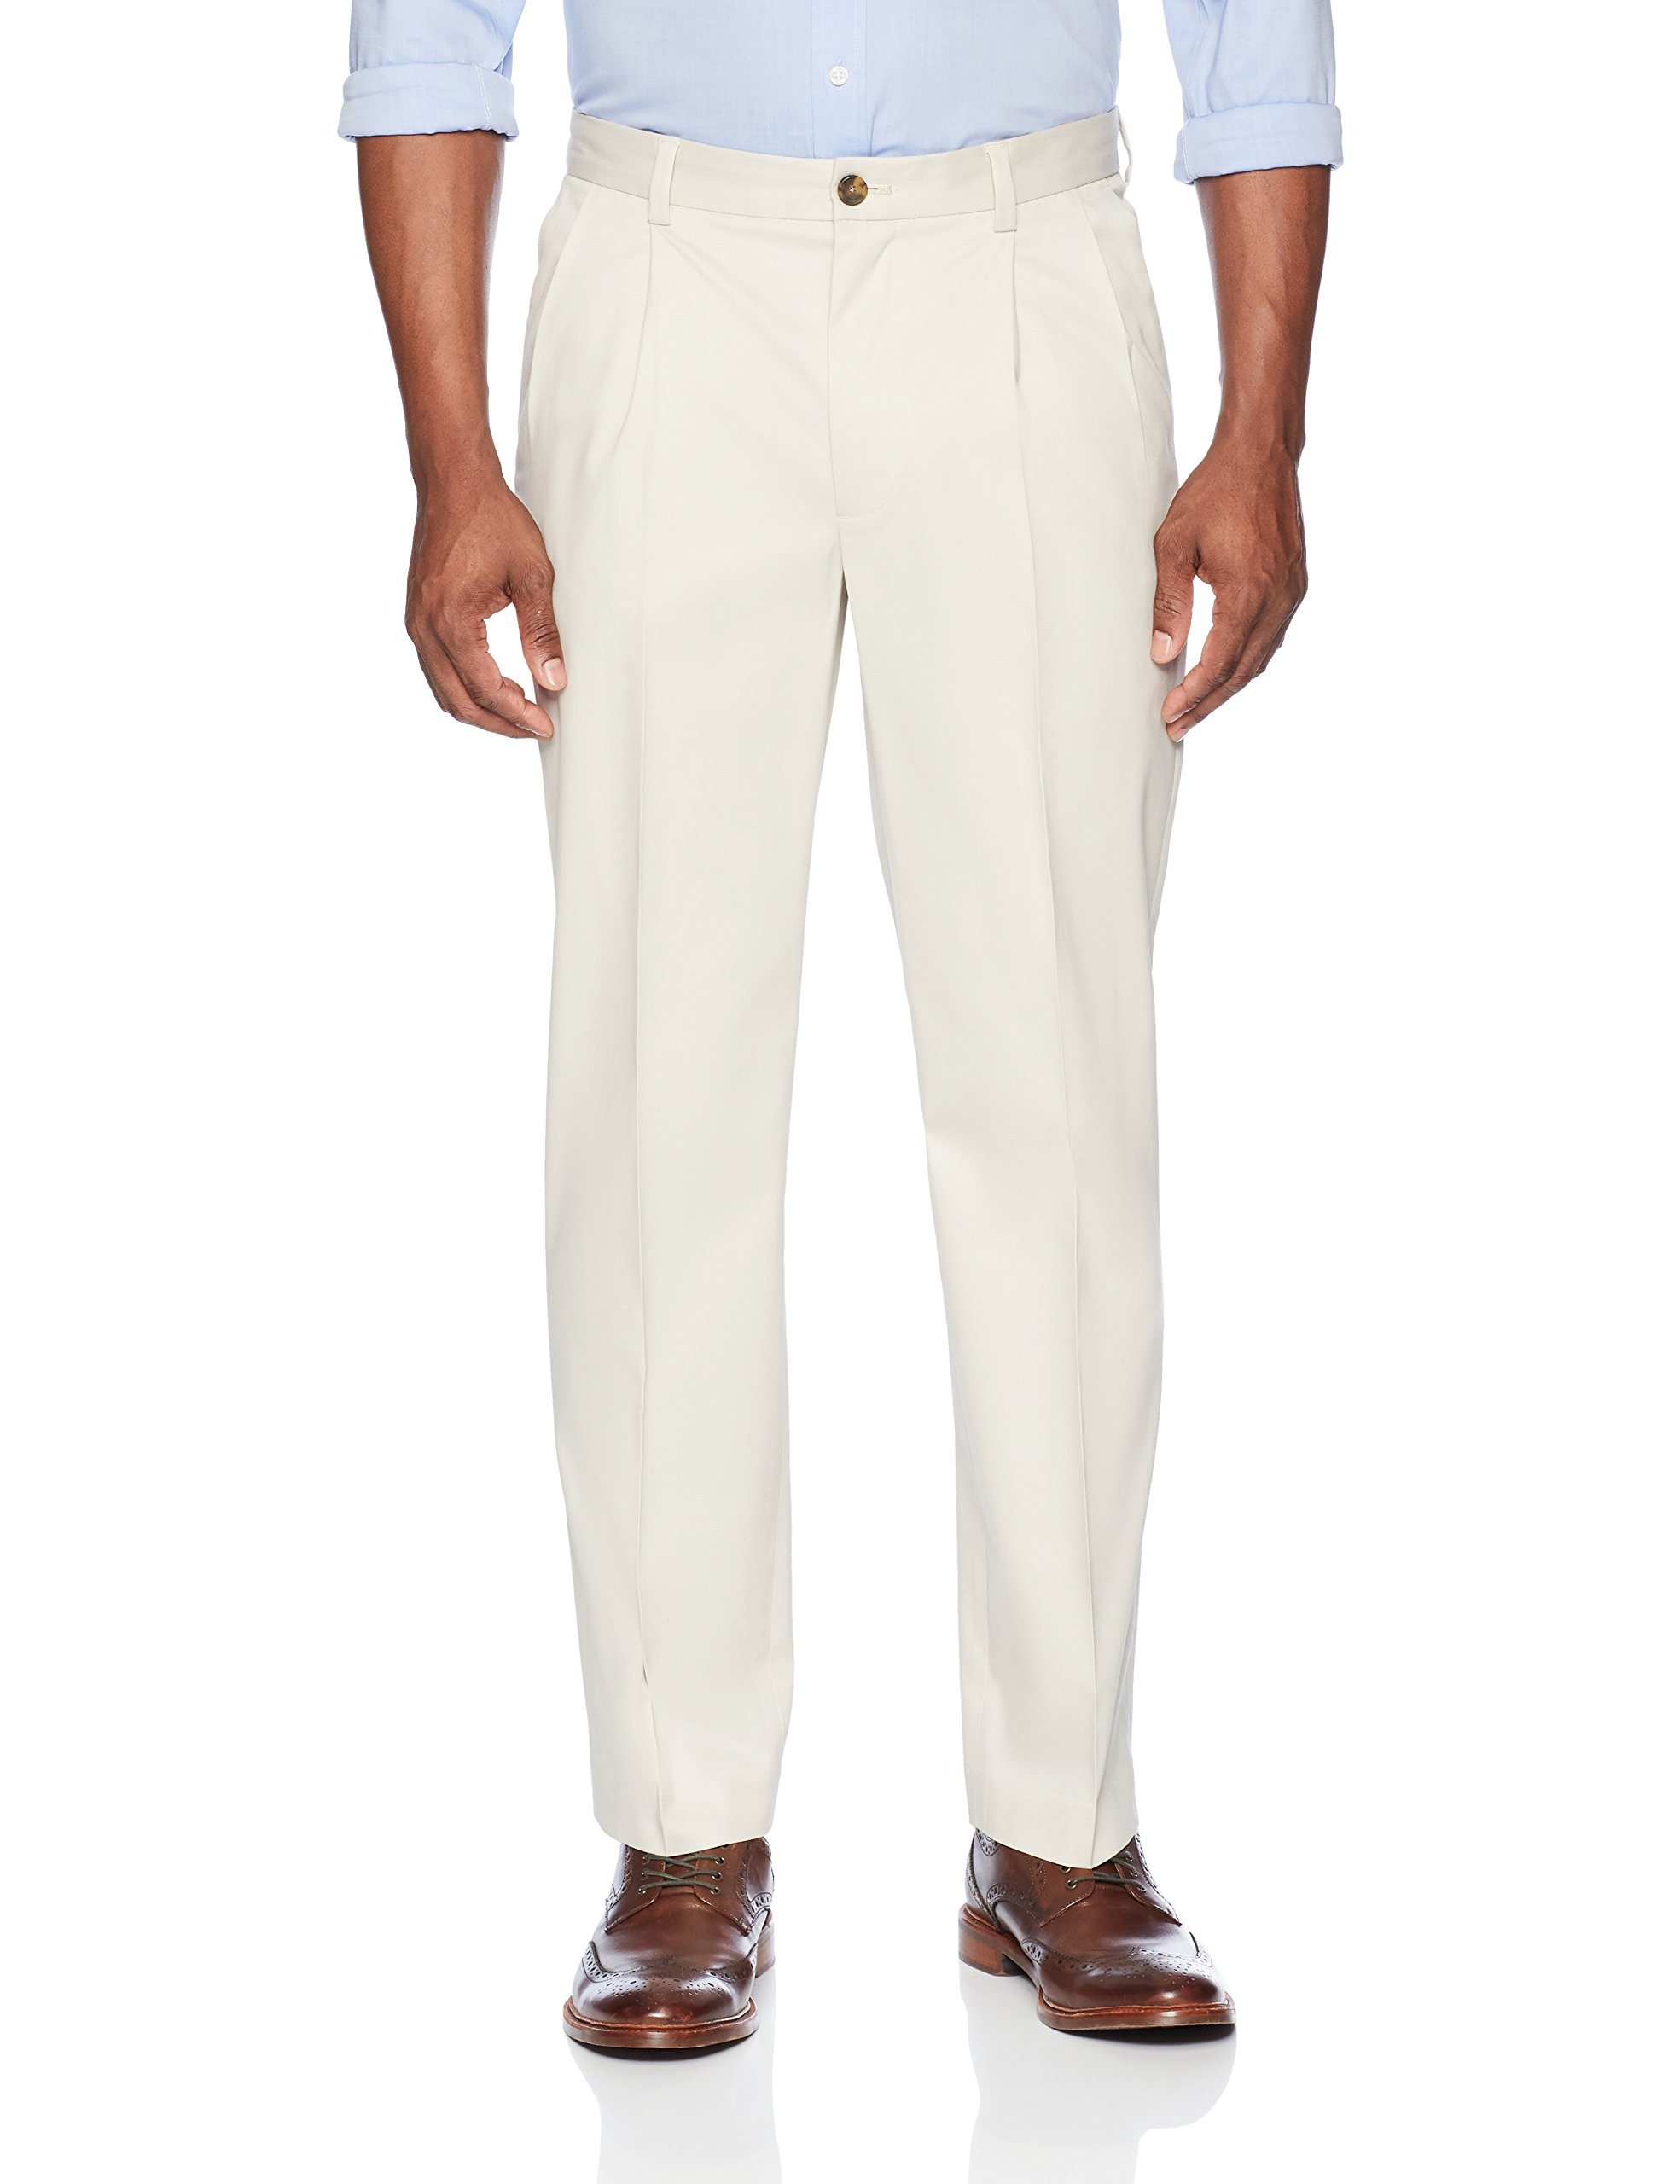 Buttoned Down Men's Relaxed Fit Pleated Stretch Non-Iron Dress Chino Pant, Stone, 33W x 30L